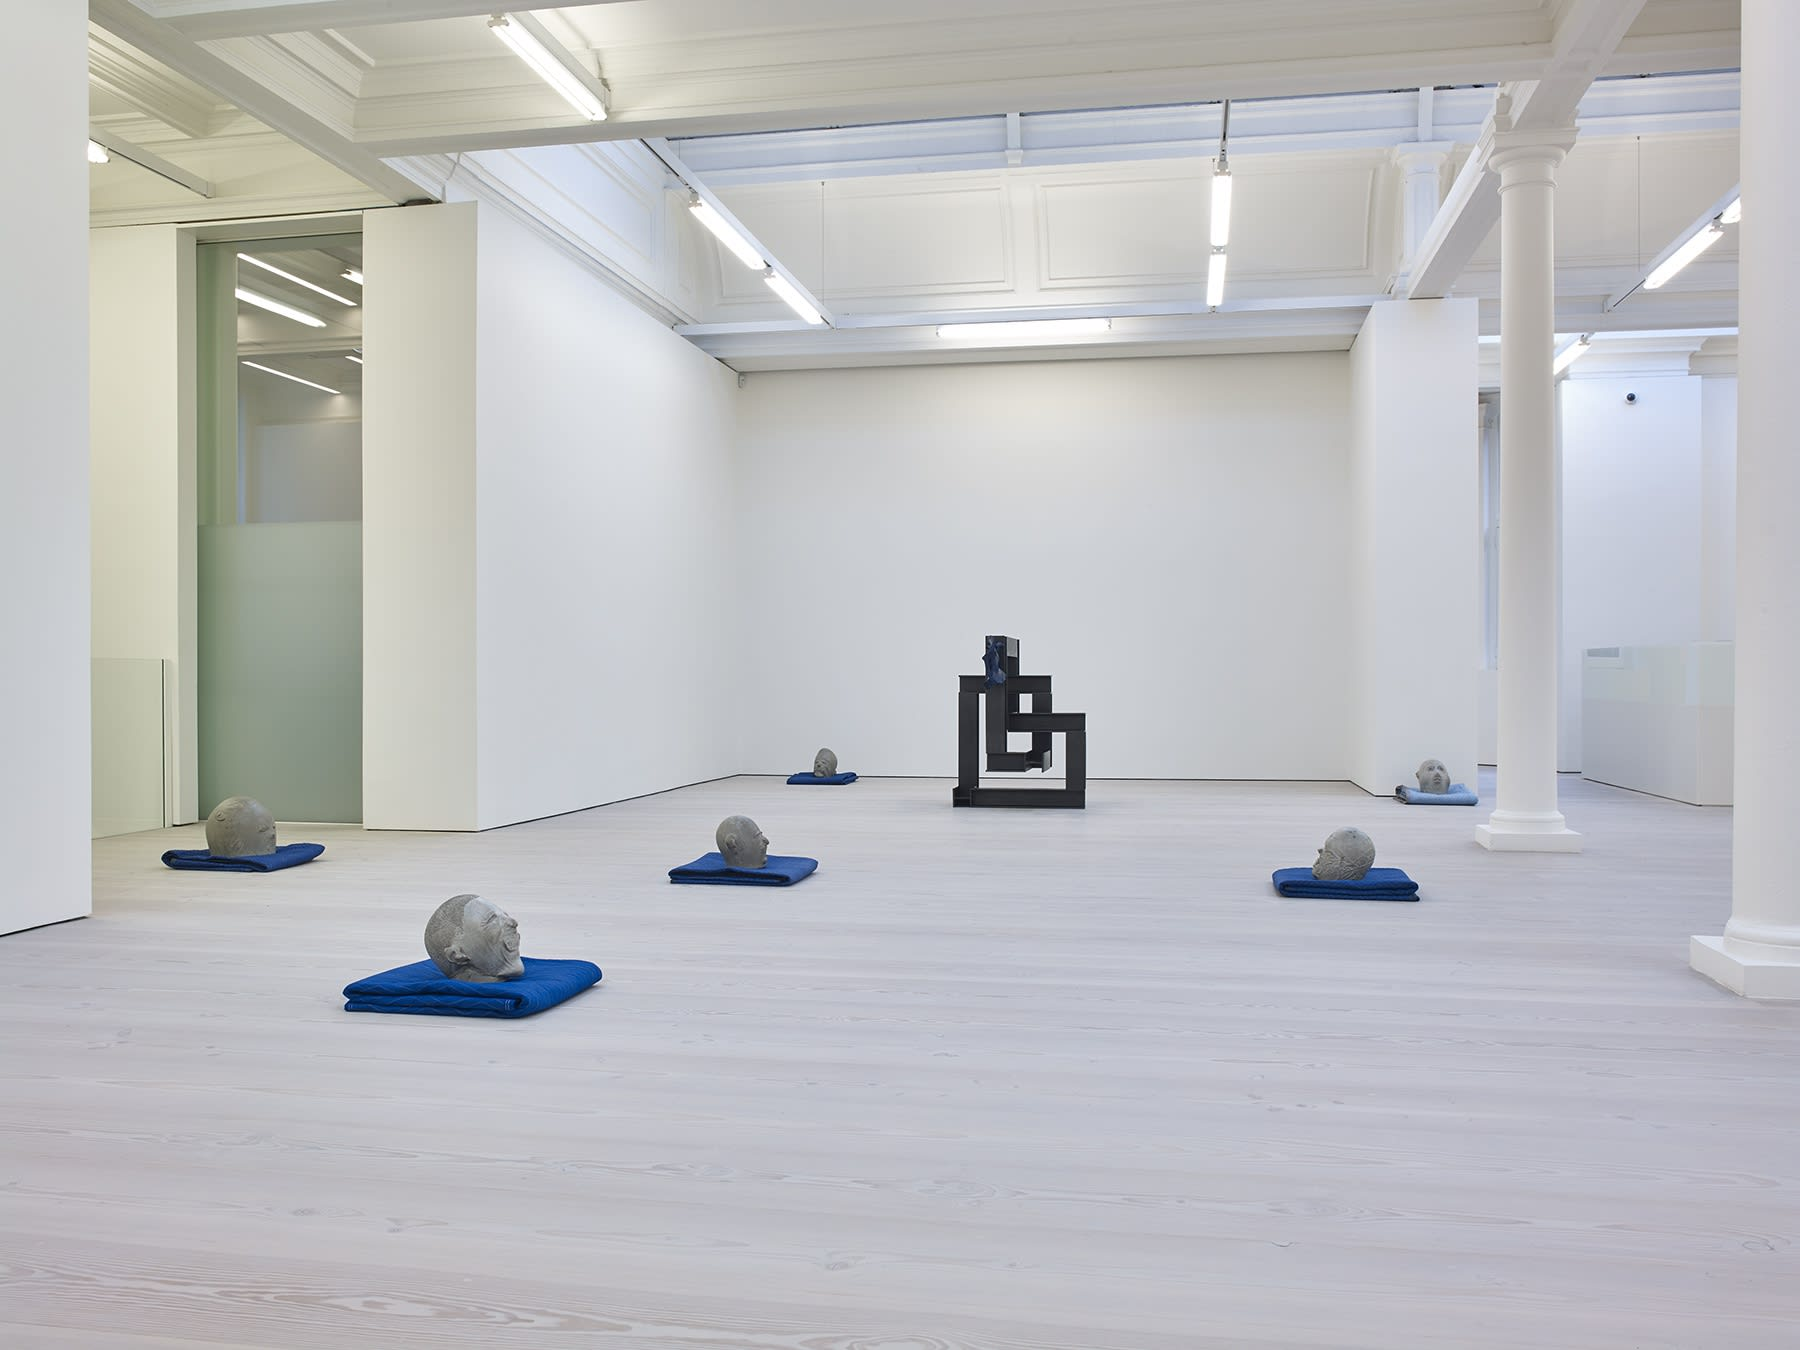 Gallery view, abstract clay heads rest on blue blankets, there is one geometric black square sculpture.